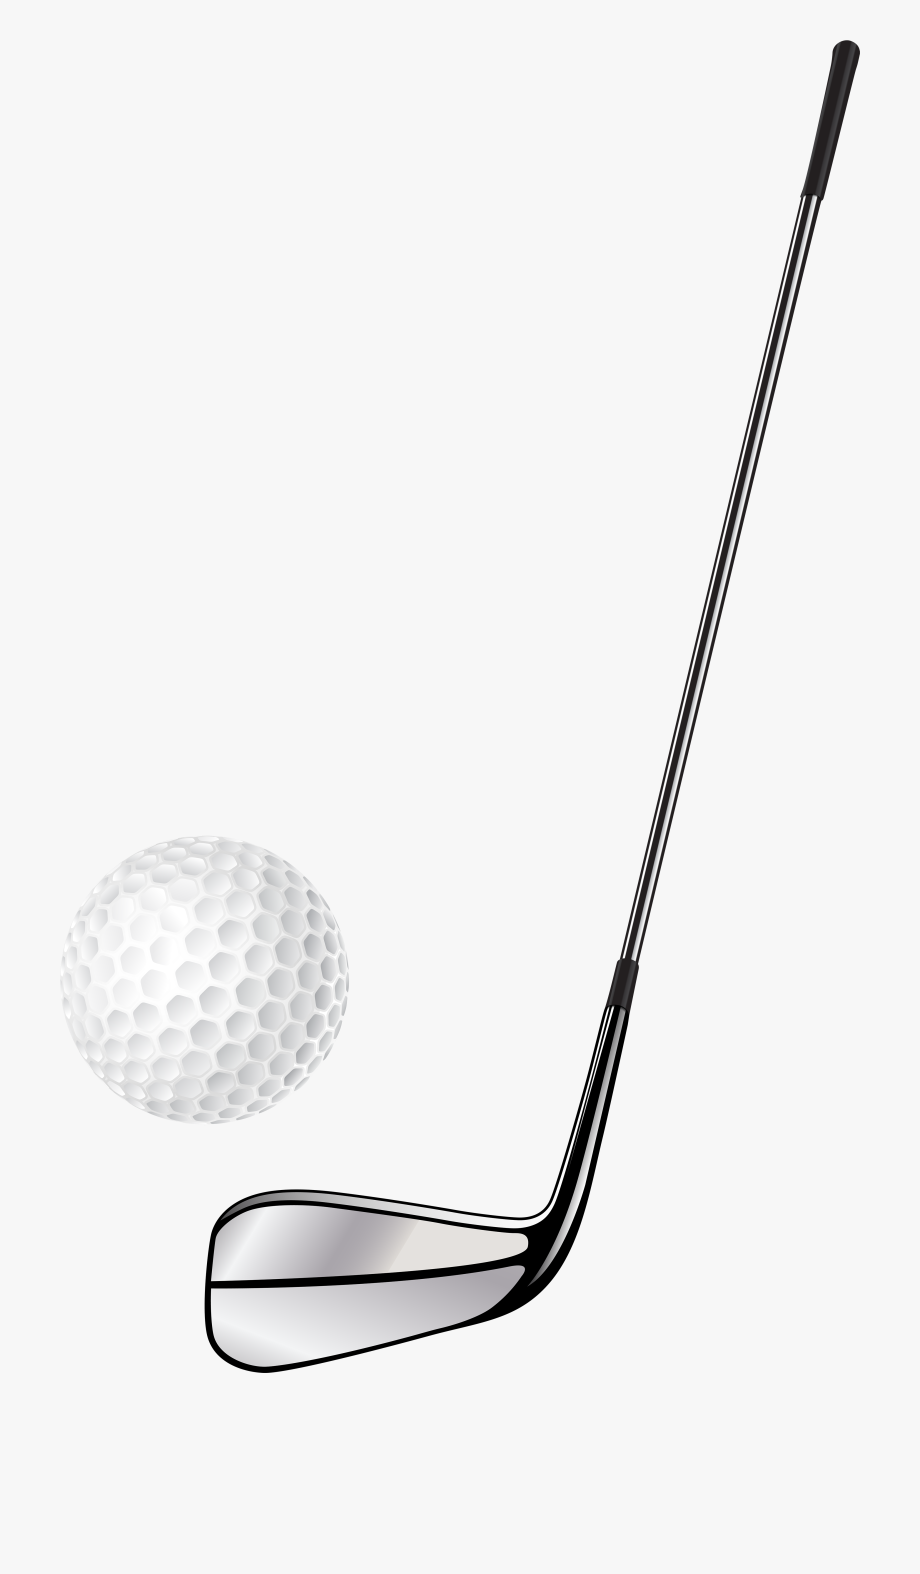 Golf stick clipart image royalty free Golf Club Stick And Ball Png Clip Art - Golf Stick And Ball #48753 ... image royalty free